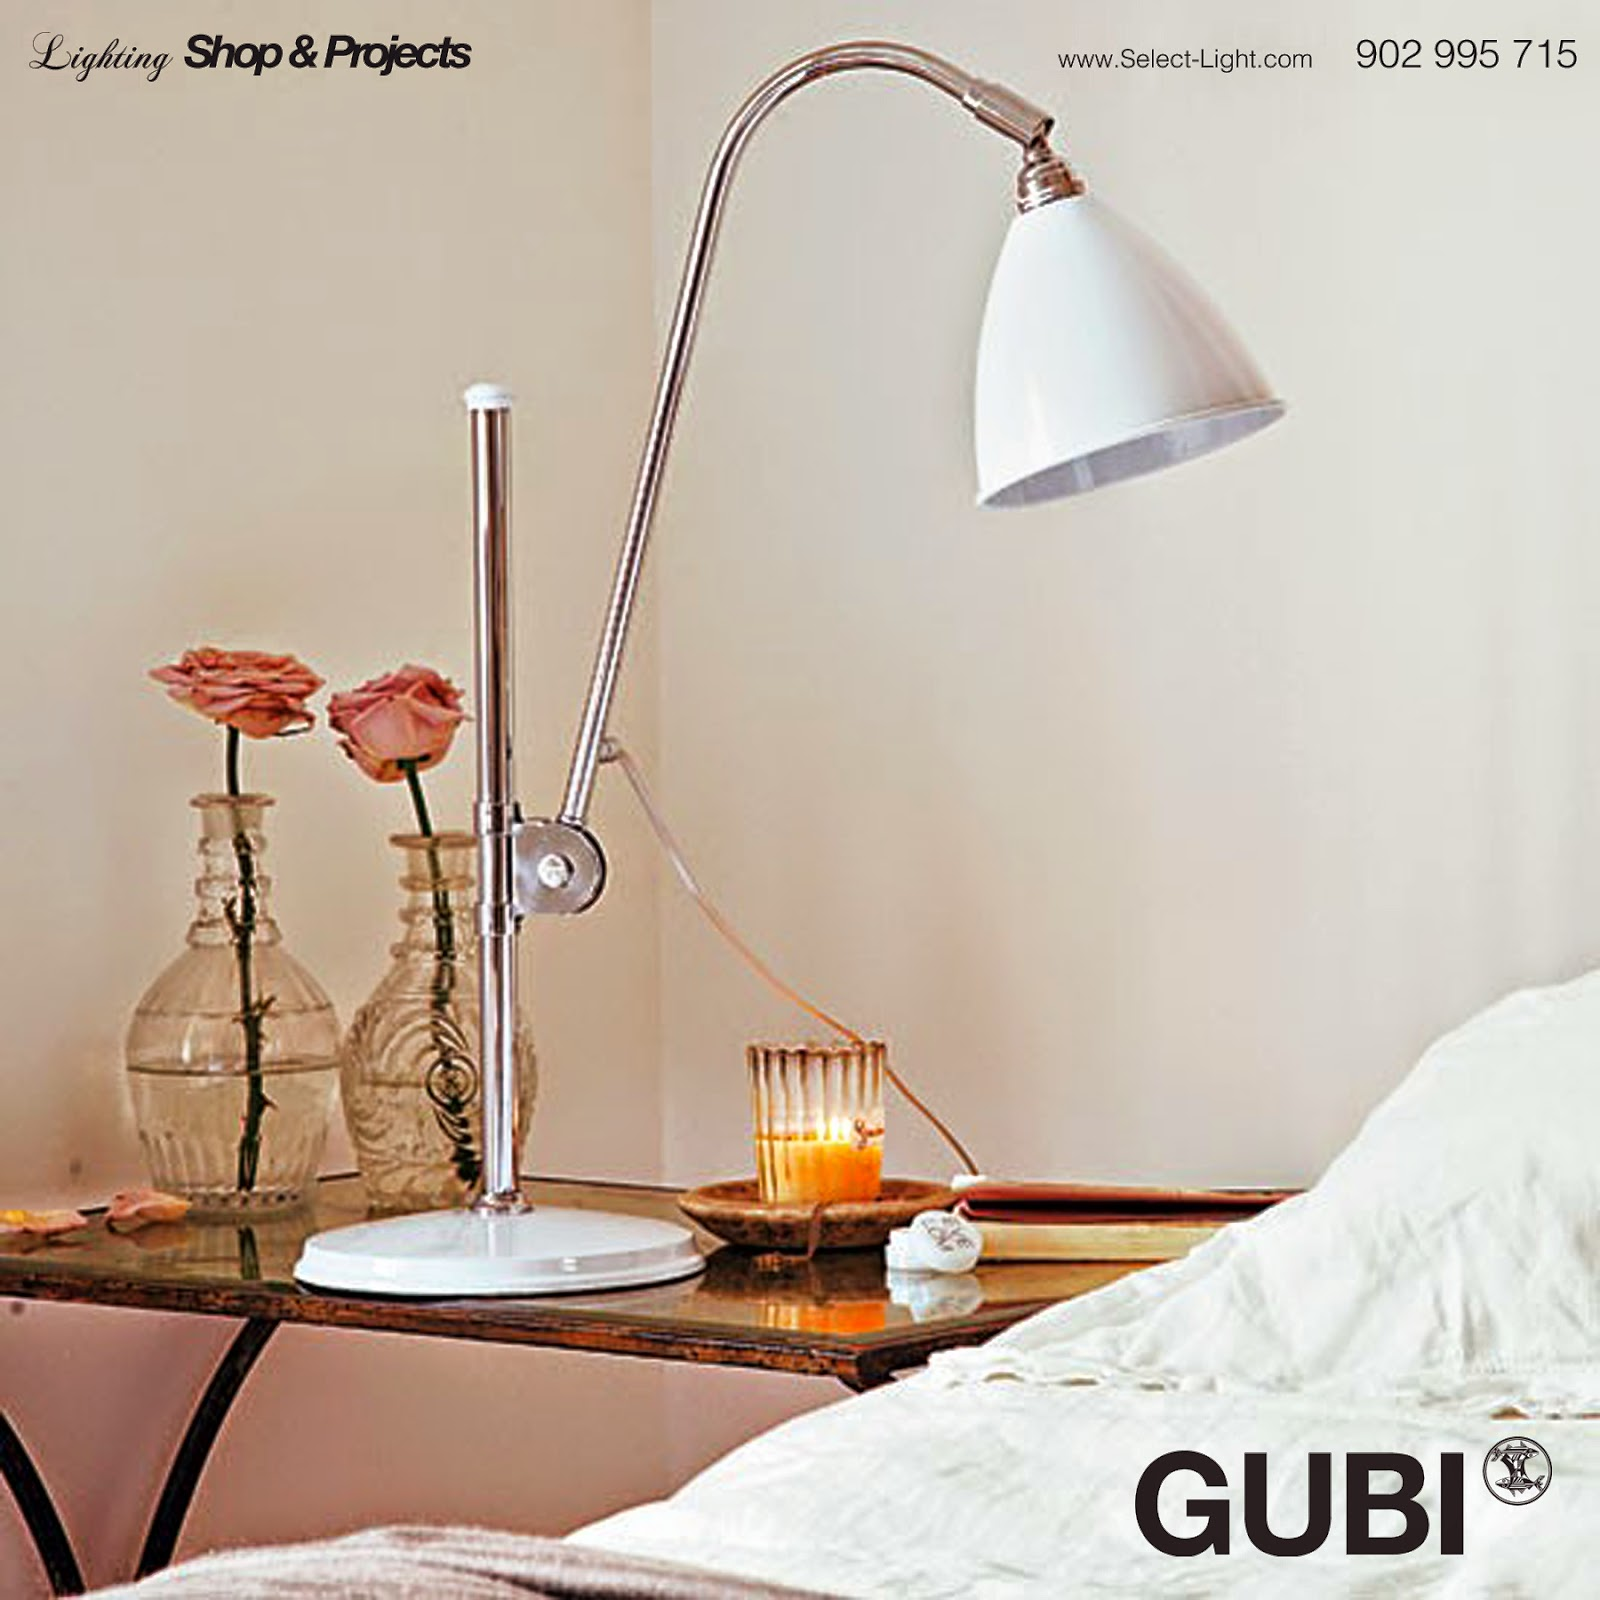 The Beslite Colletion By Gubi